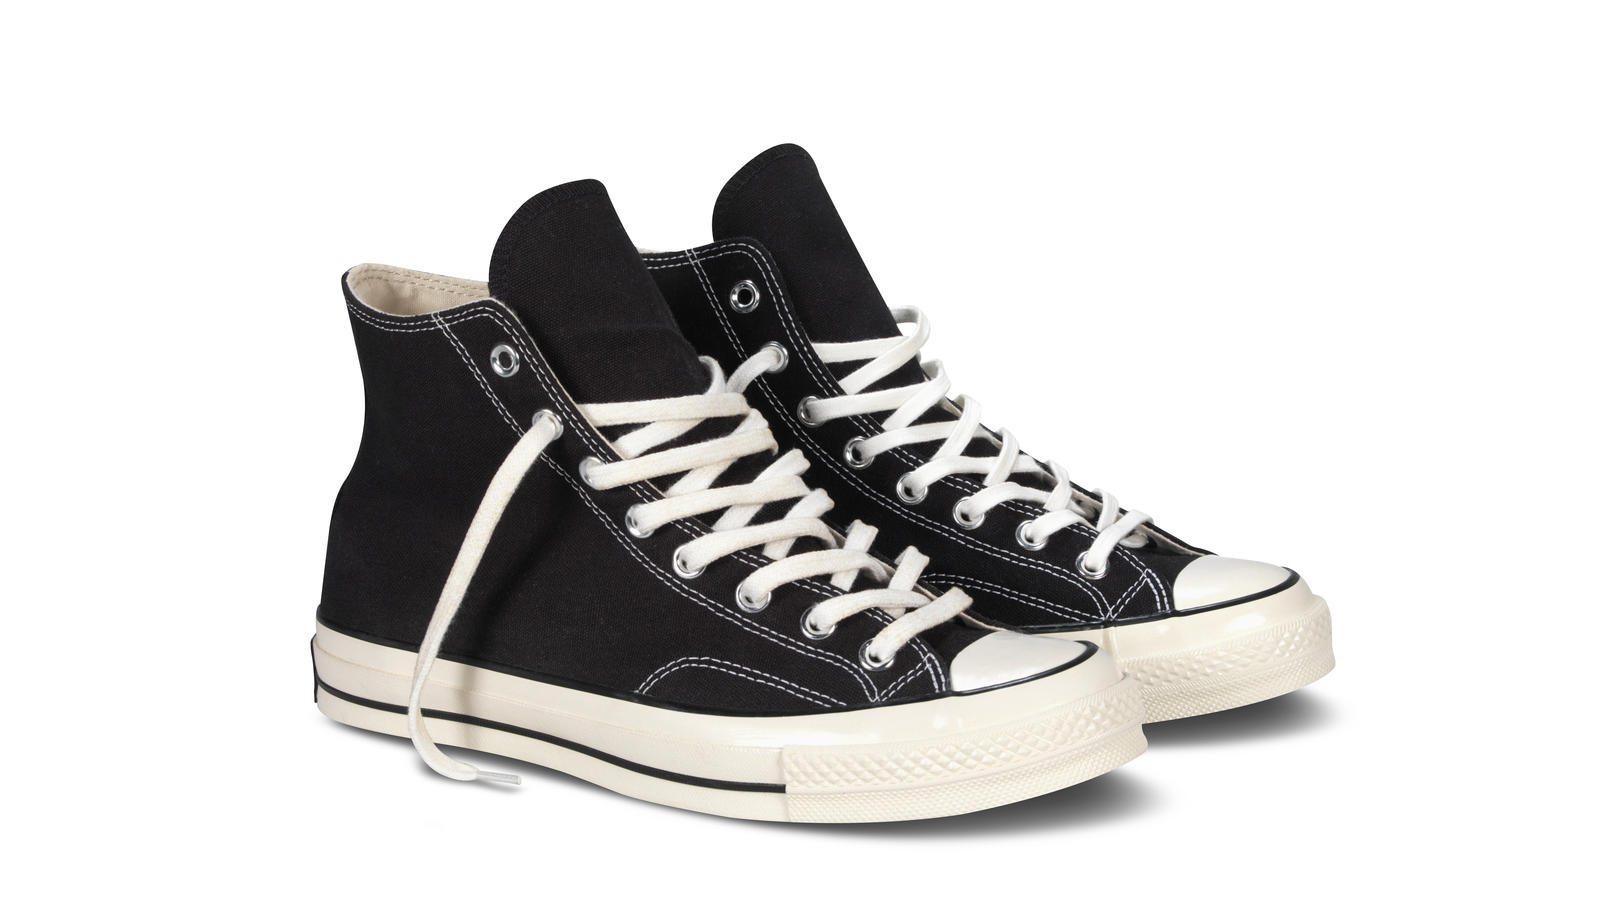 Converse 1970s Chuck Taylor All Star Pair Diag Original